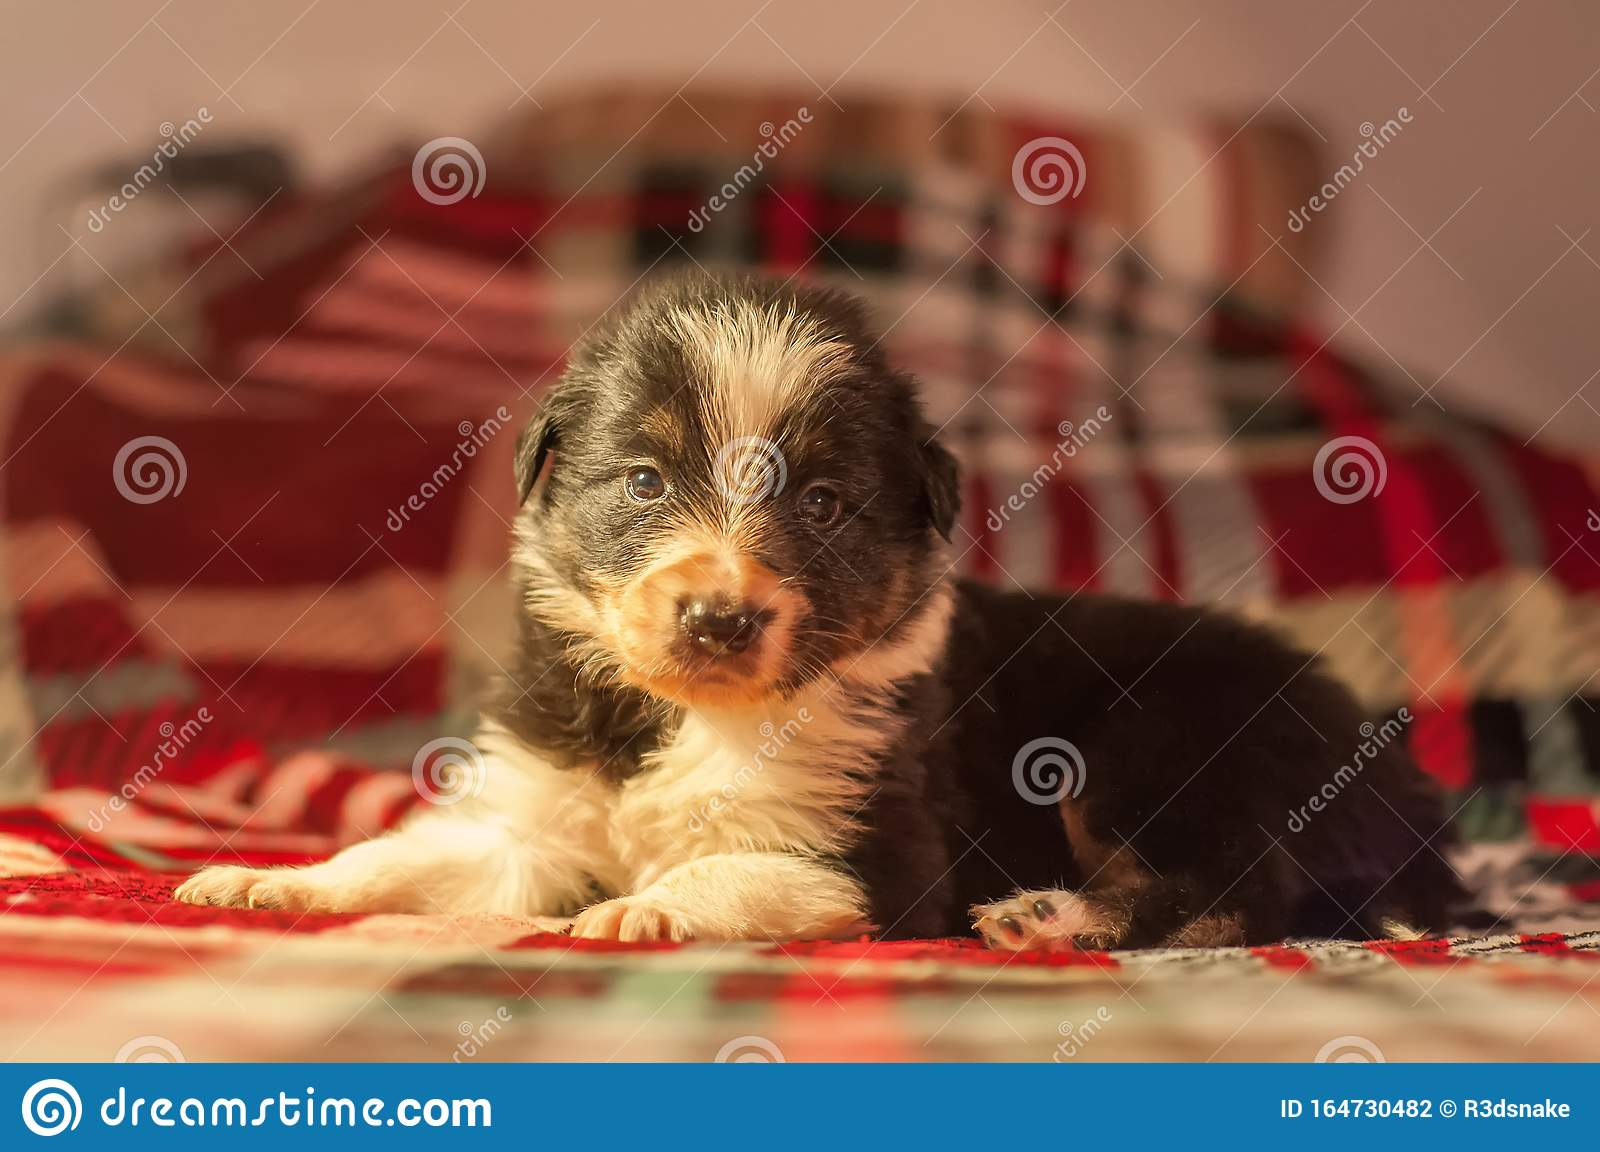 Border Collie Puppy Stock Photo Image Of Beauty Breed 164730482